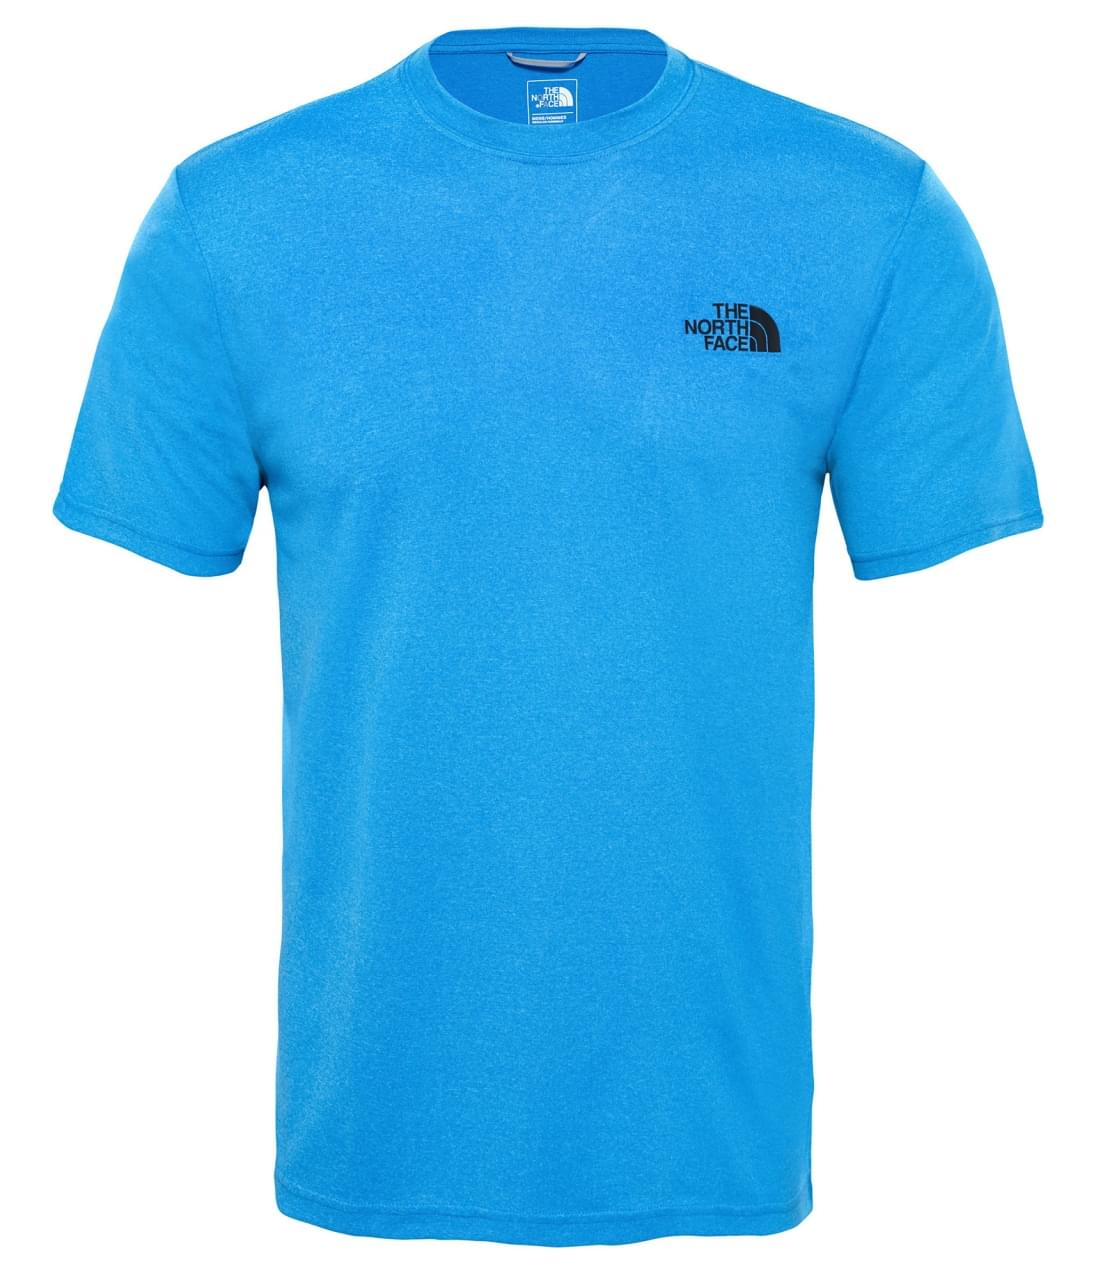 The North Face Reaxion Amp Crew T-shirt Heren